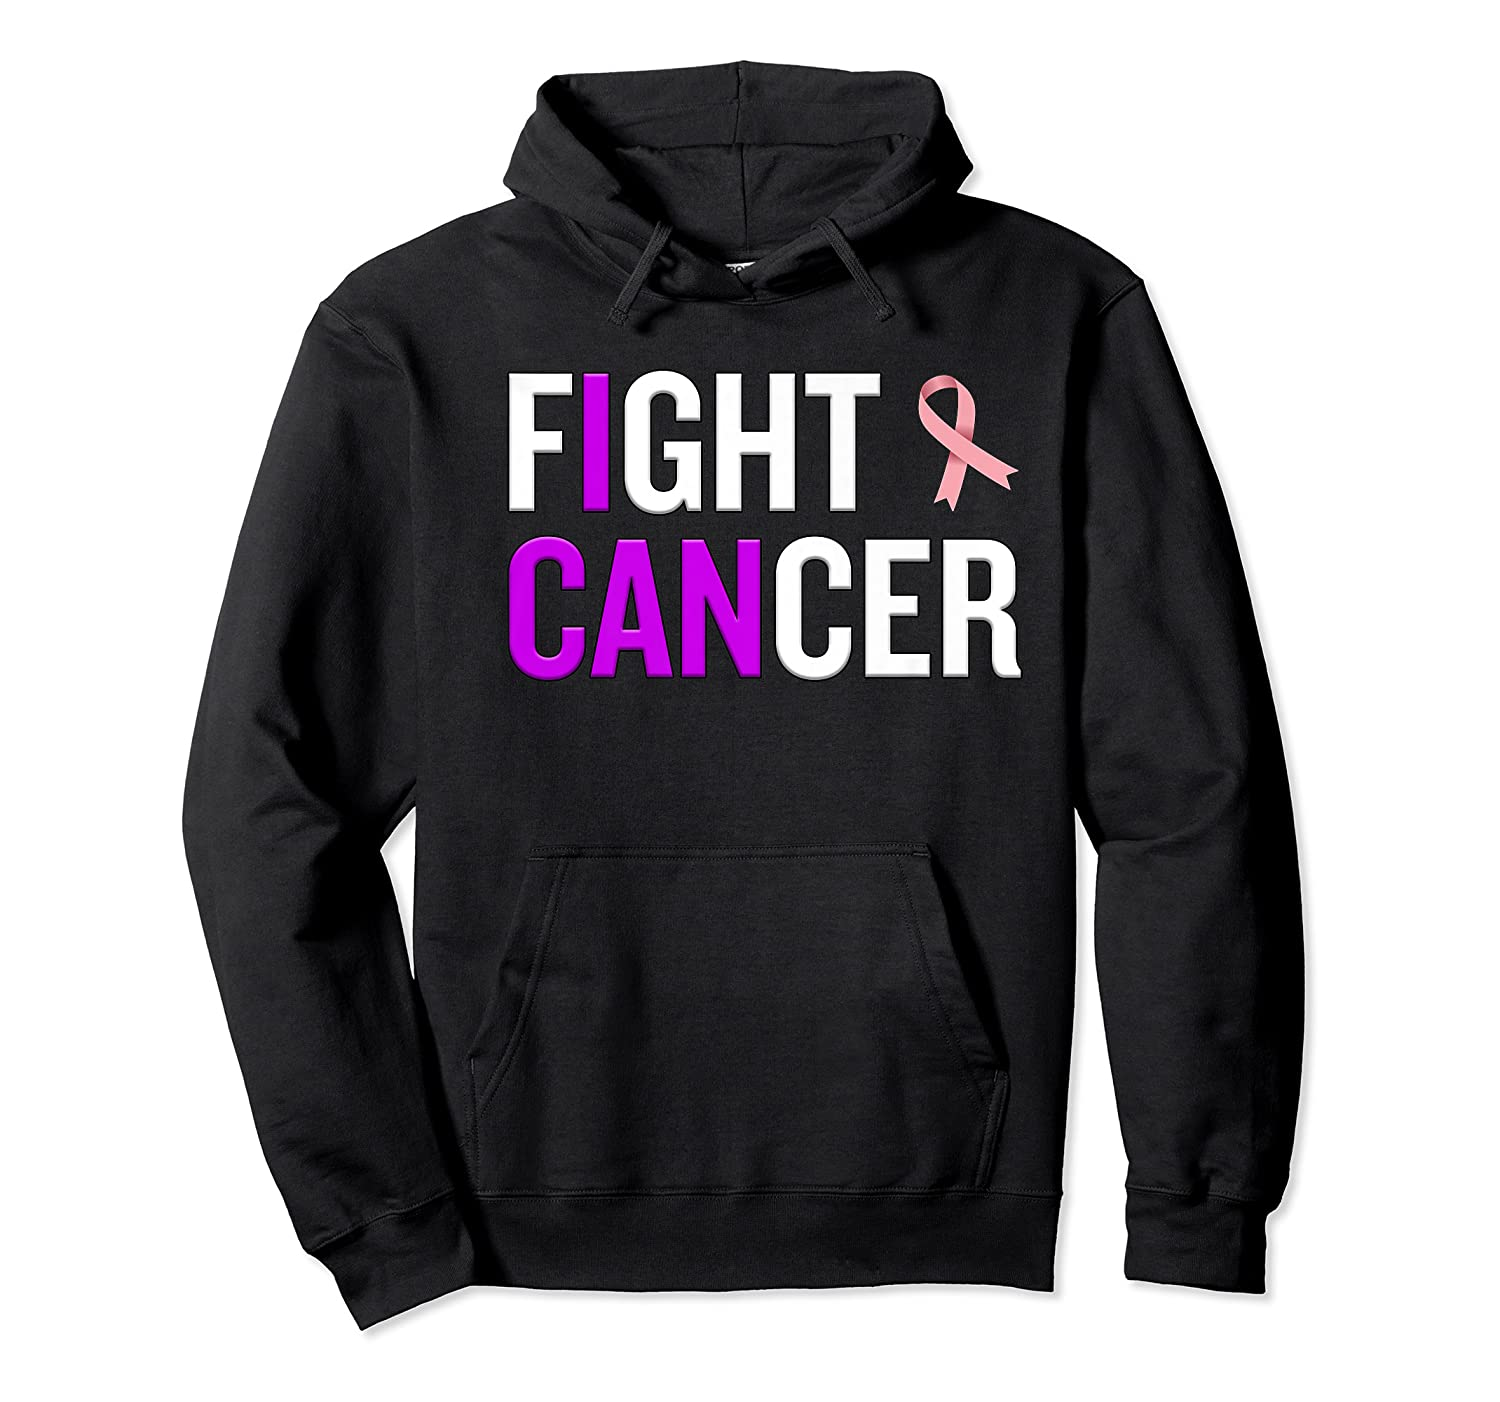 Breast Cancer Month Awareness Gift For Survivors Warriors Premium T Shirt Unisex Pullover Hoodie